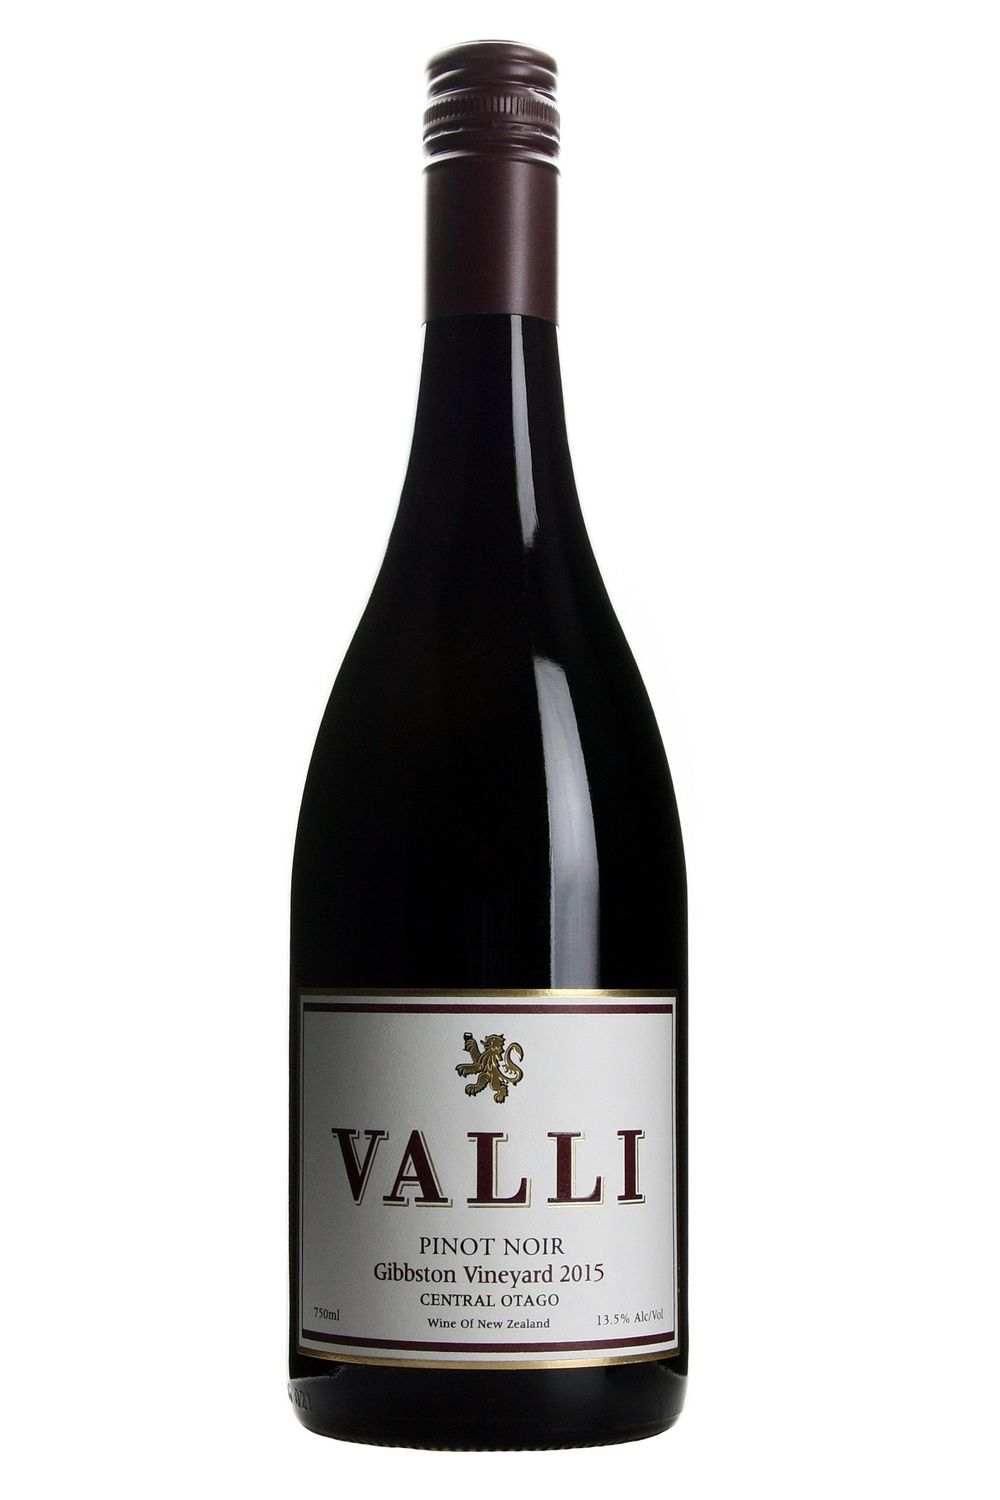 Valli Pinot Noir 2015 Gibbston